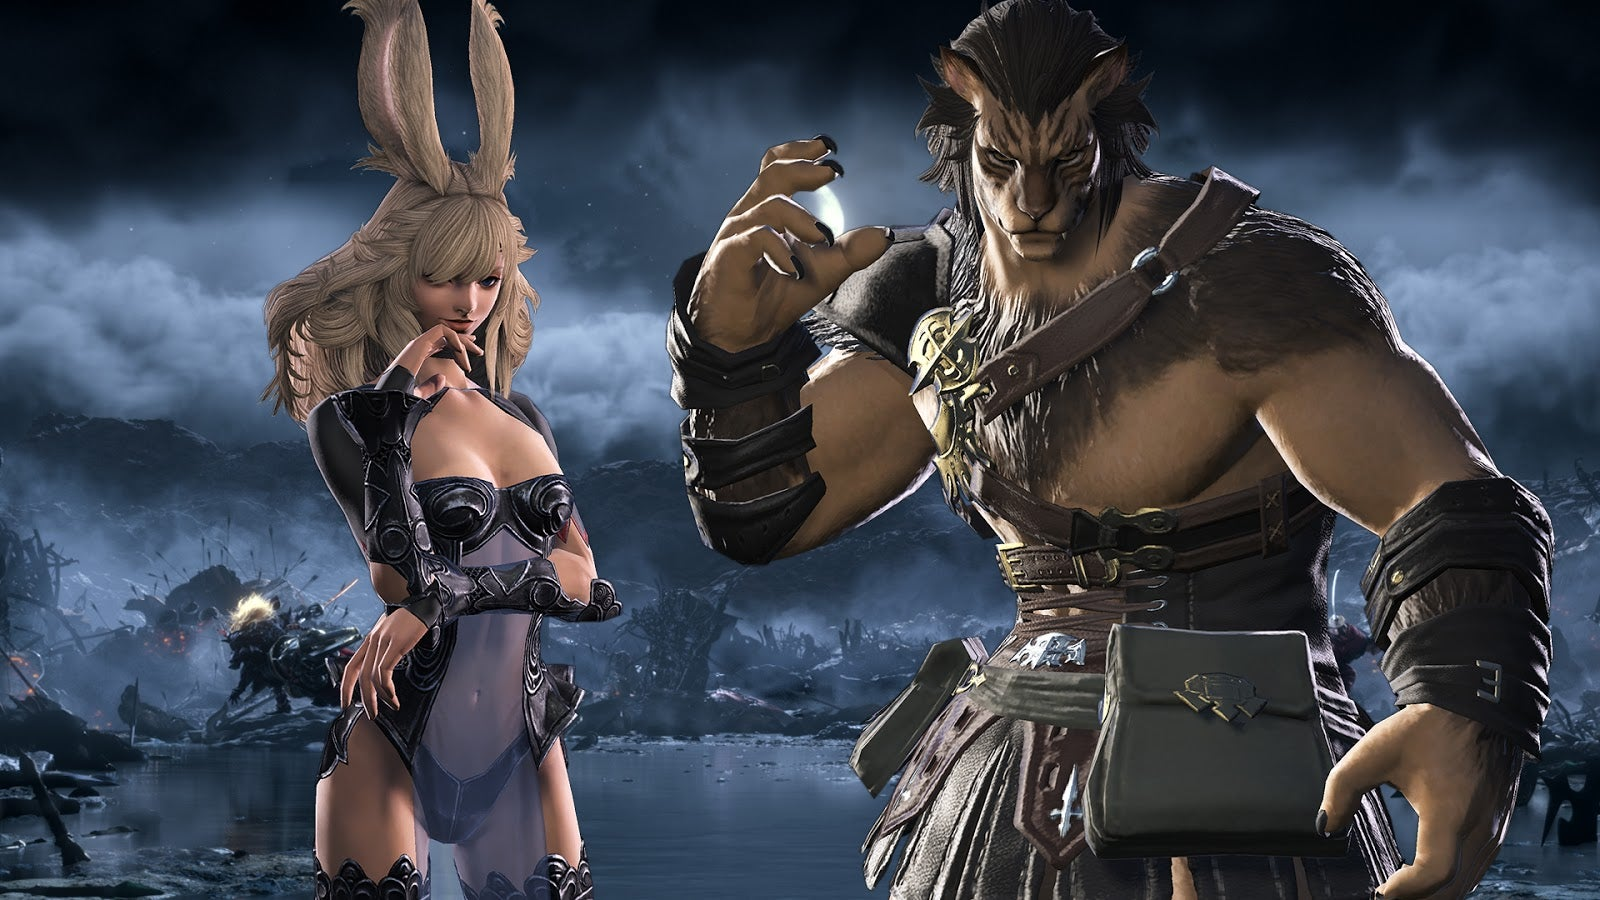 Final Fantasy XIV's Newest Races Are Gender-Locked, And Players Are Not Happy